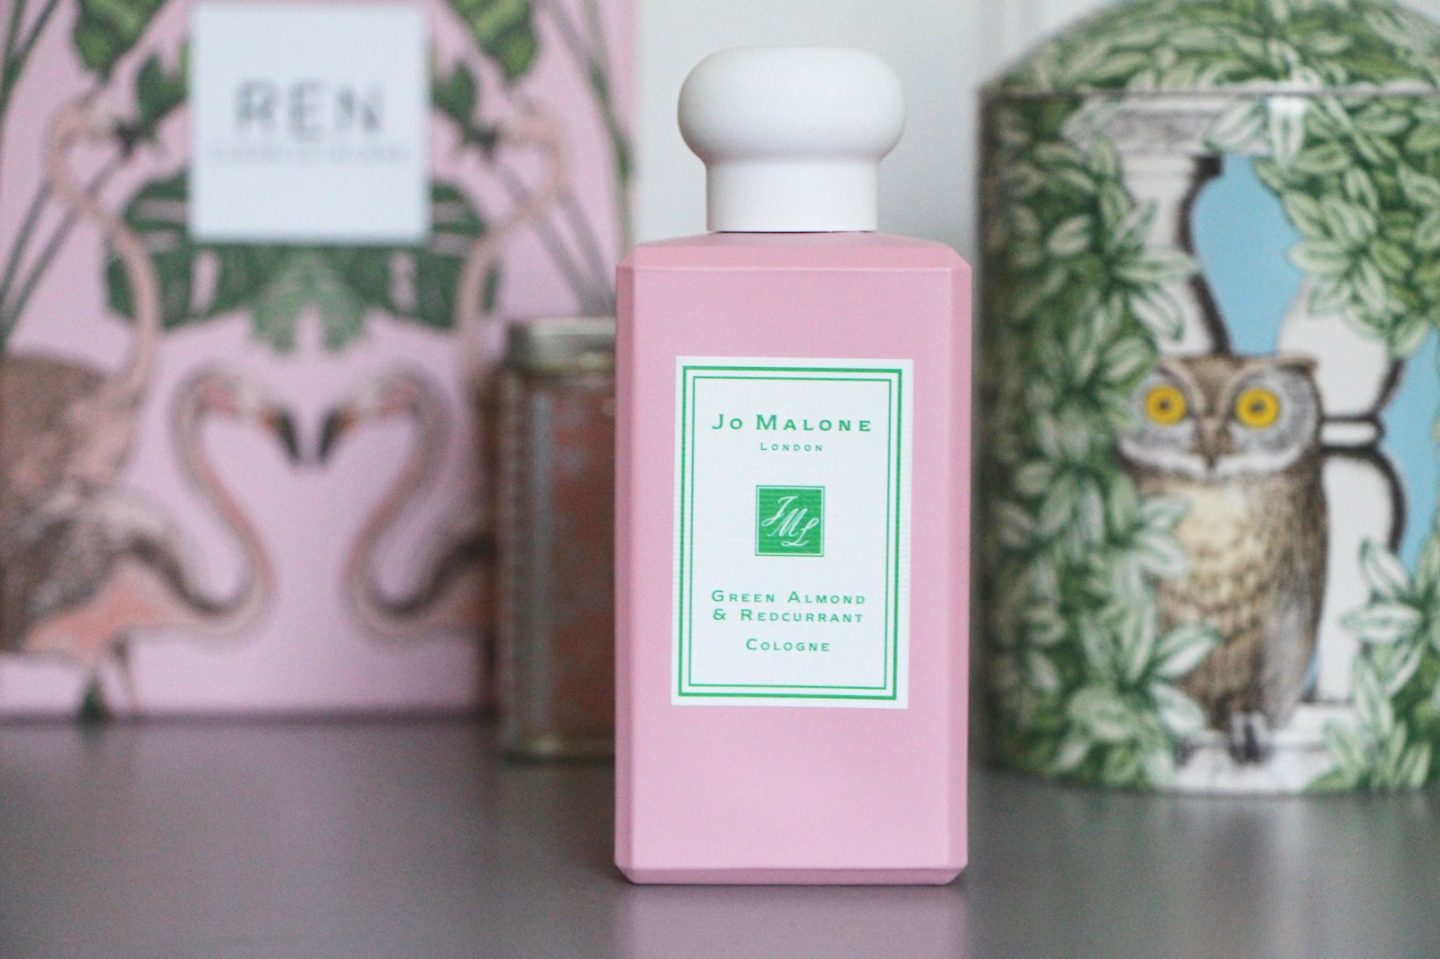 Jo Malone Green Almond and Redcurrant Cologne